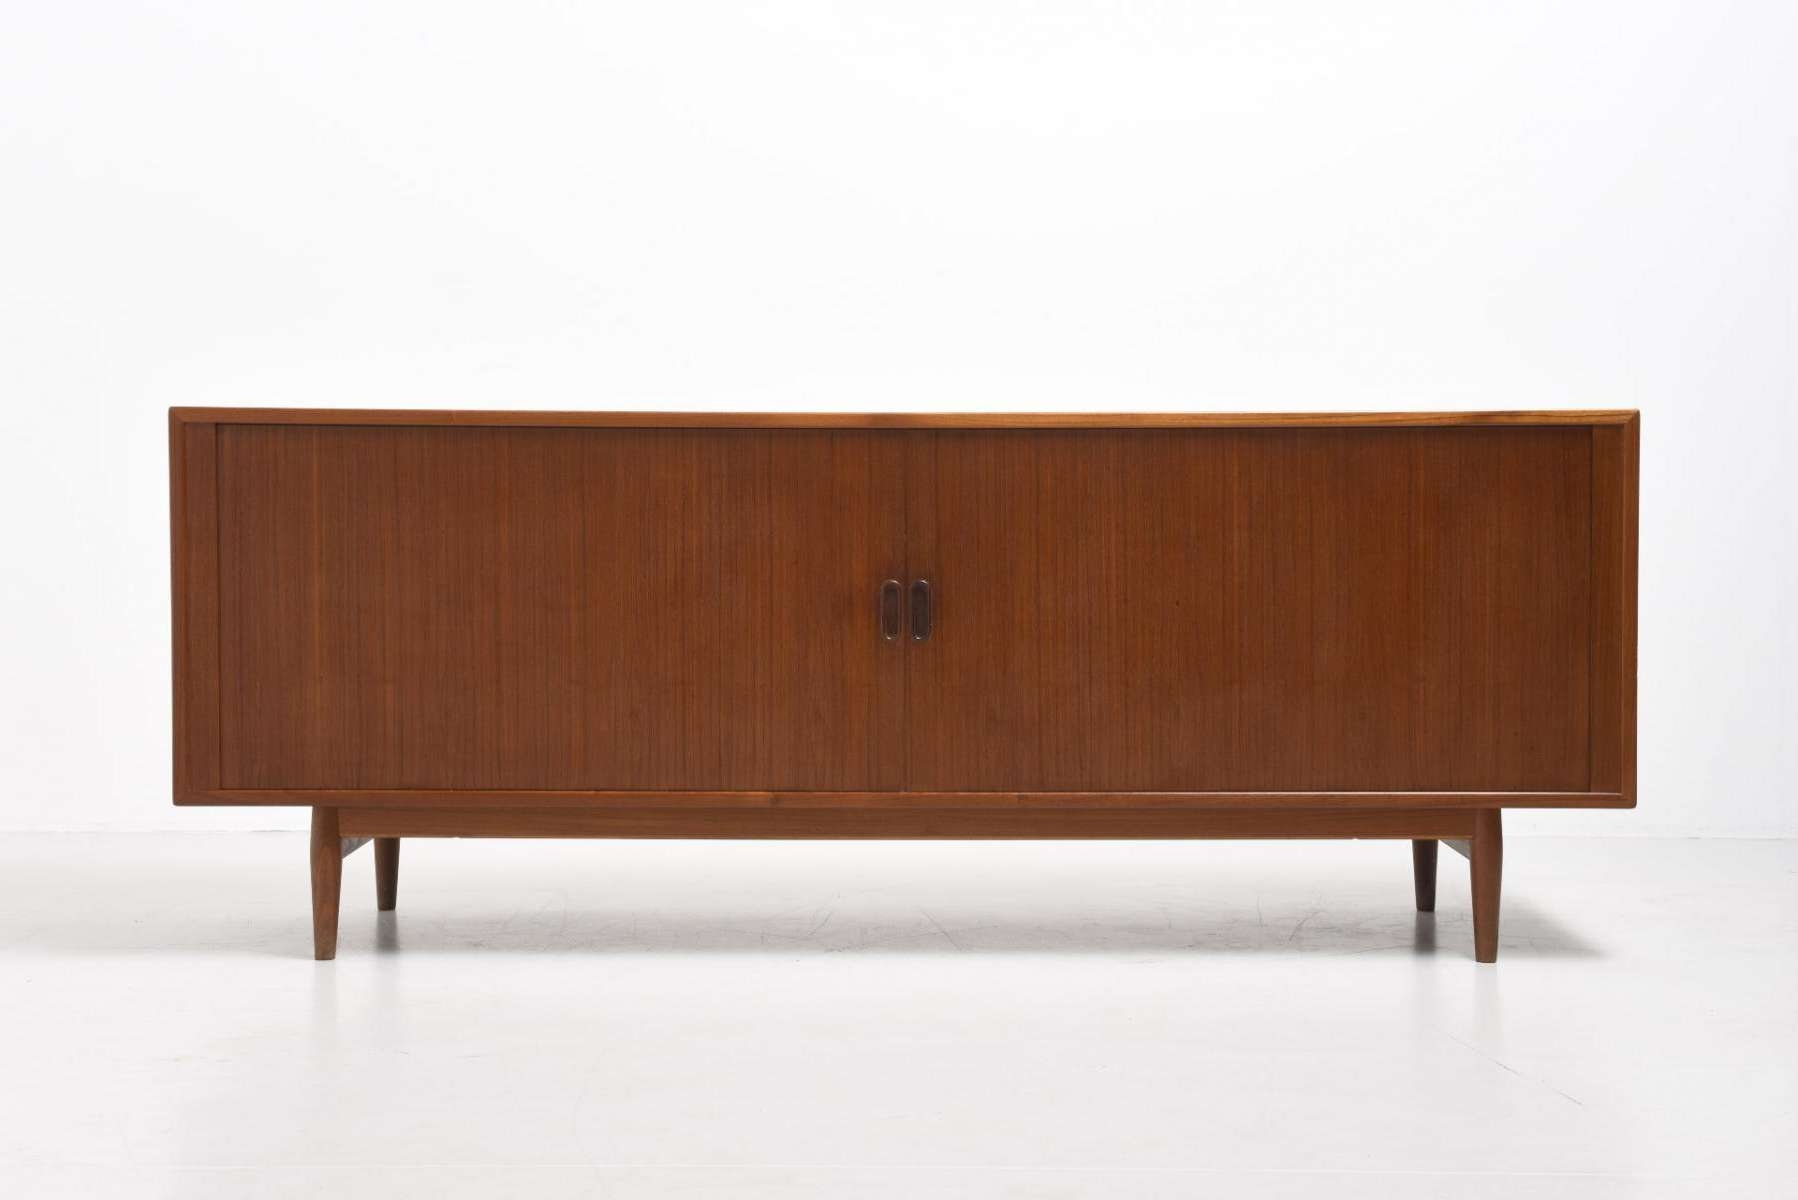 Vintage Sideboardarne Vodder For Sibast For Sale At Pamono In Vintage Sideboards (View 12 of 20)